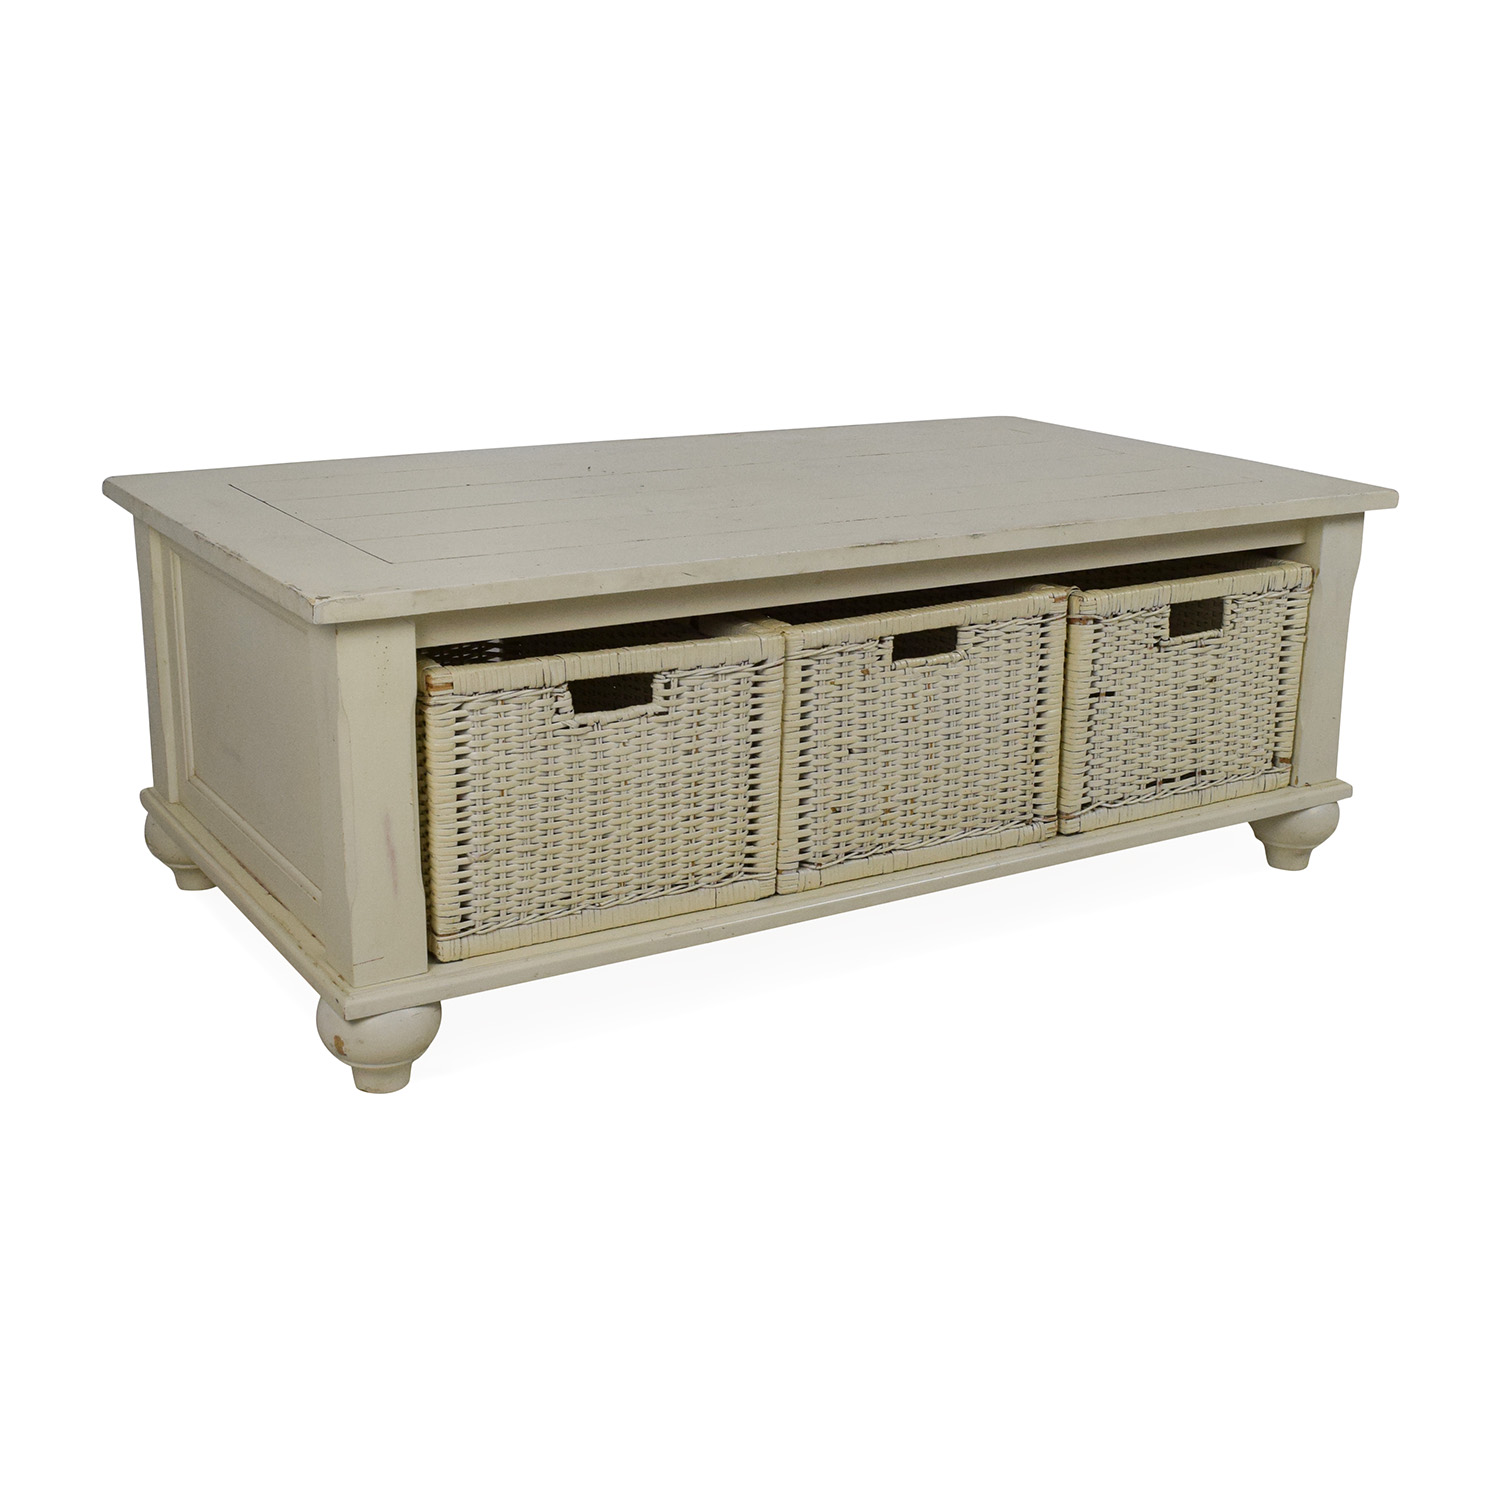 56% OFF Klaussner Furniture Klaussner Furniture Treasures White